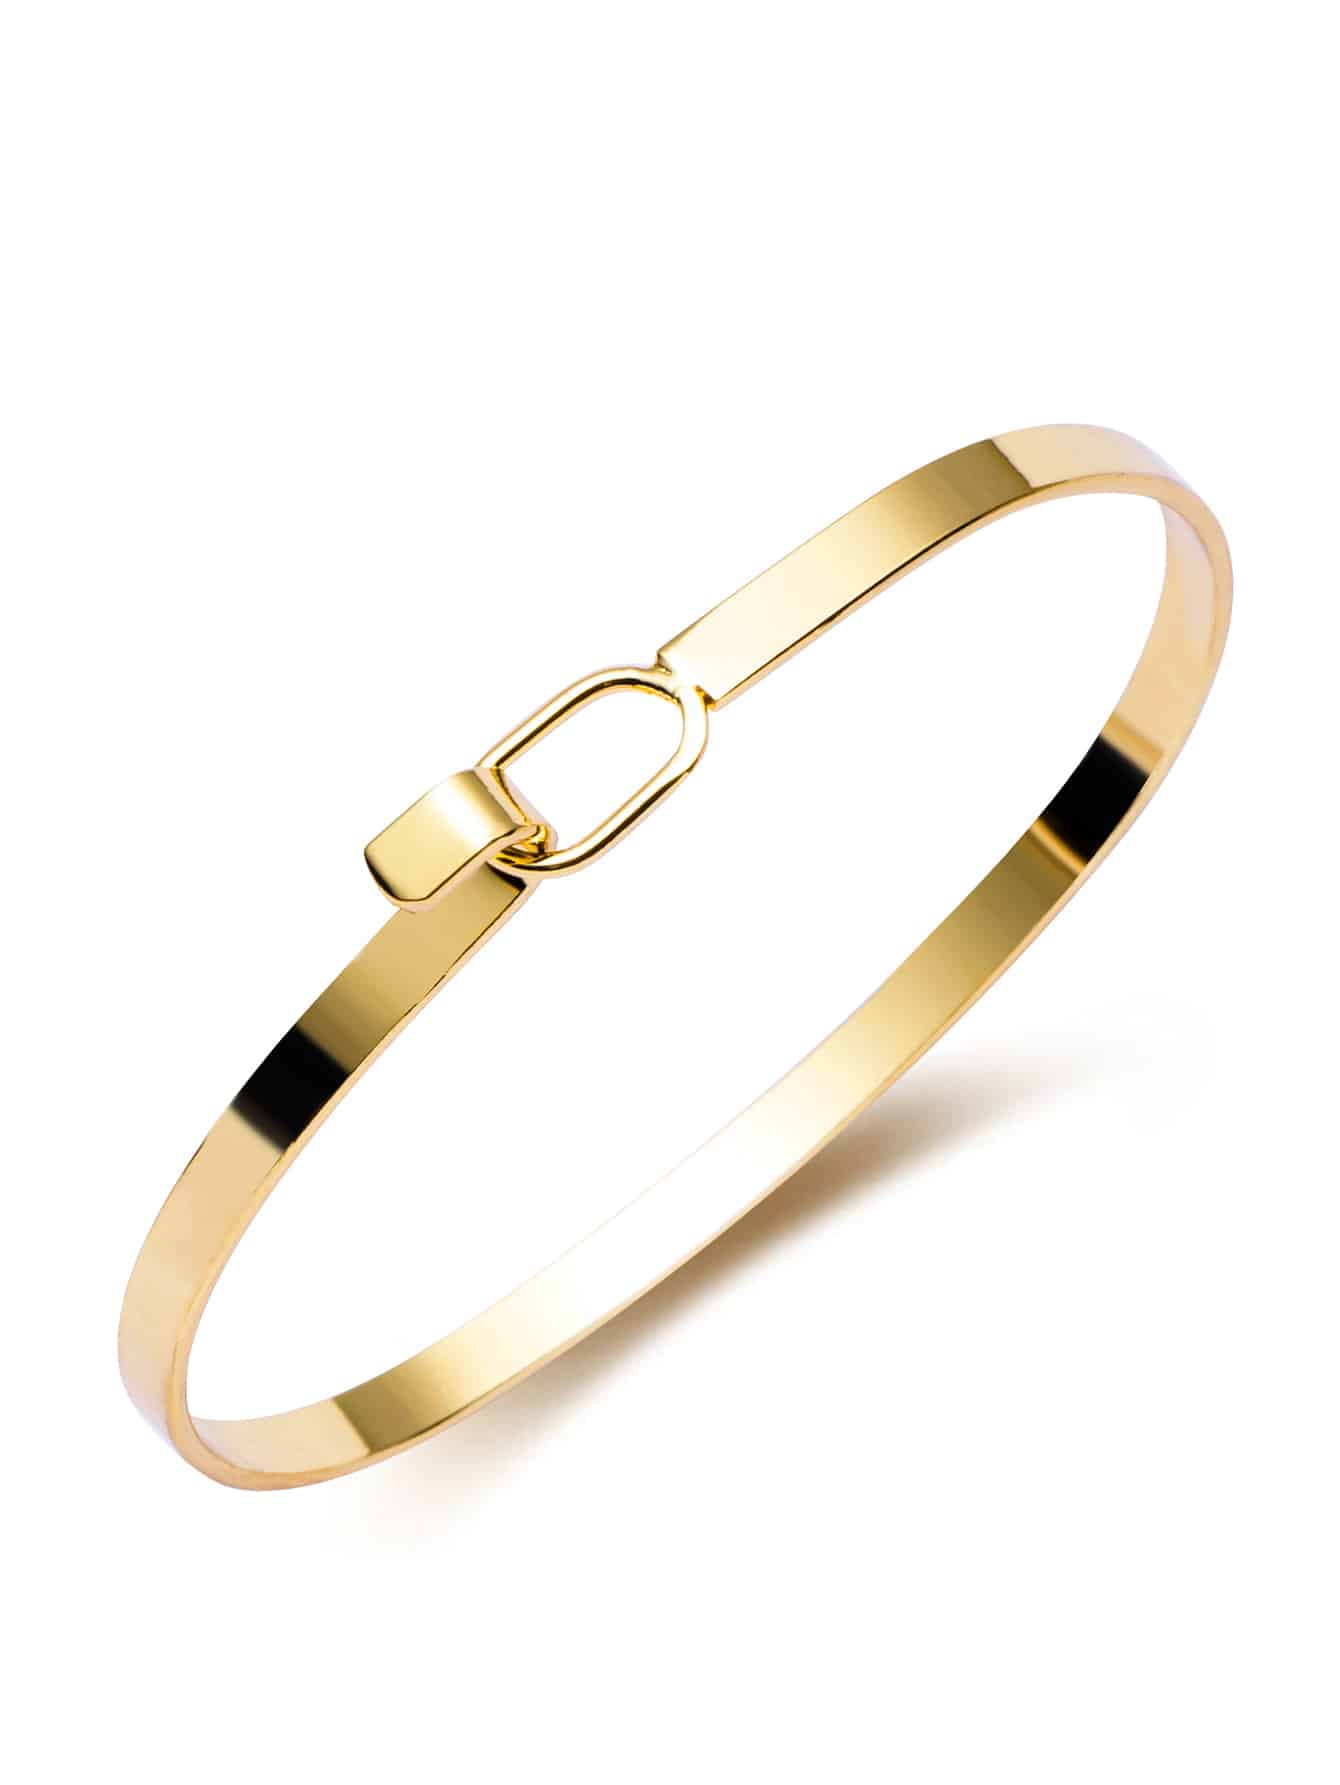 Gold Plated Buckled Minimalist Open Bracelet charming alloy gold plated bracelet